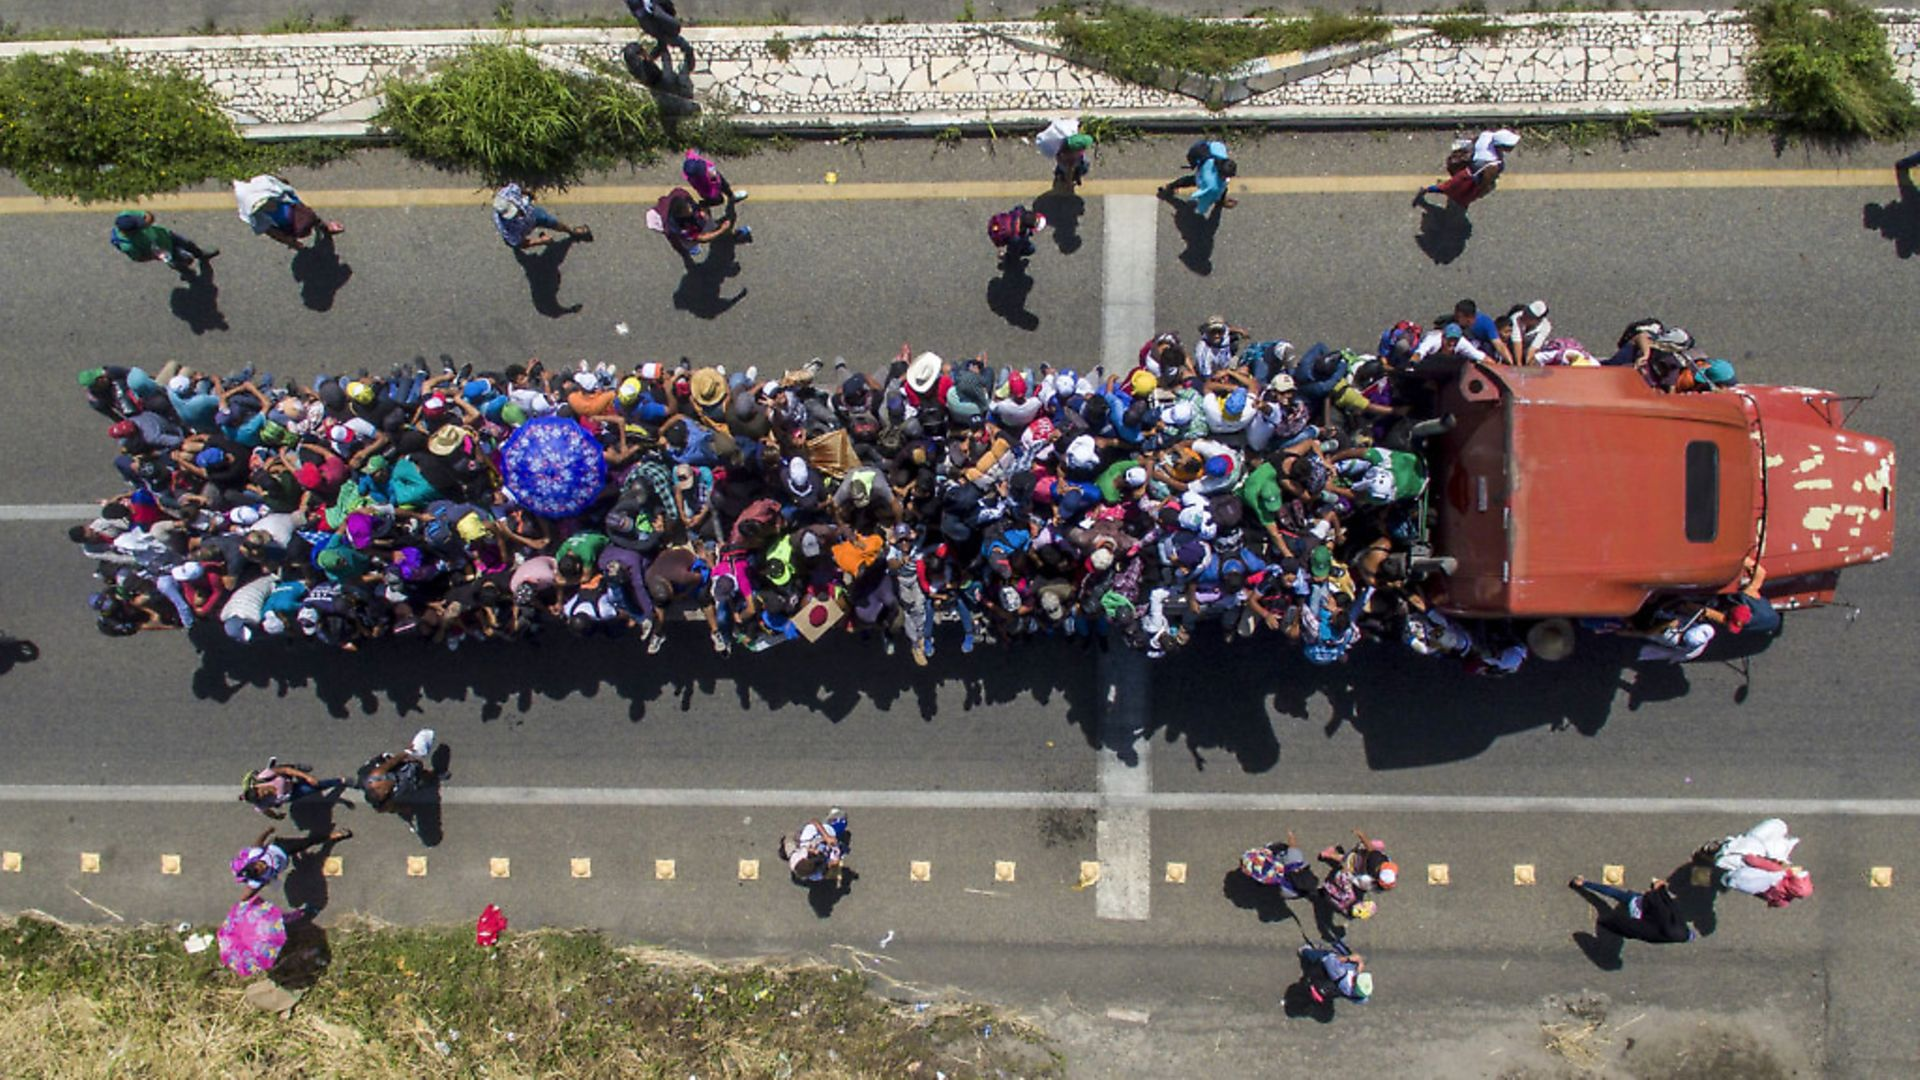 Aerial view of Honduran migrants onboard a truck as they take part in a caravan heading to the US, in the outskirts of Tapachula, Mexico. Picture by PEDRO PARDO/AFP - Credit: AFP/Getty Images